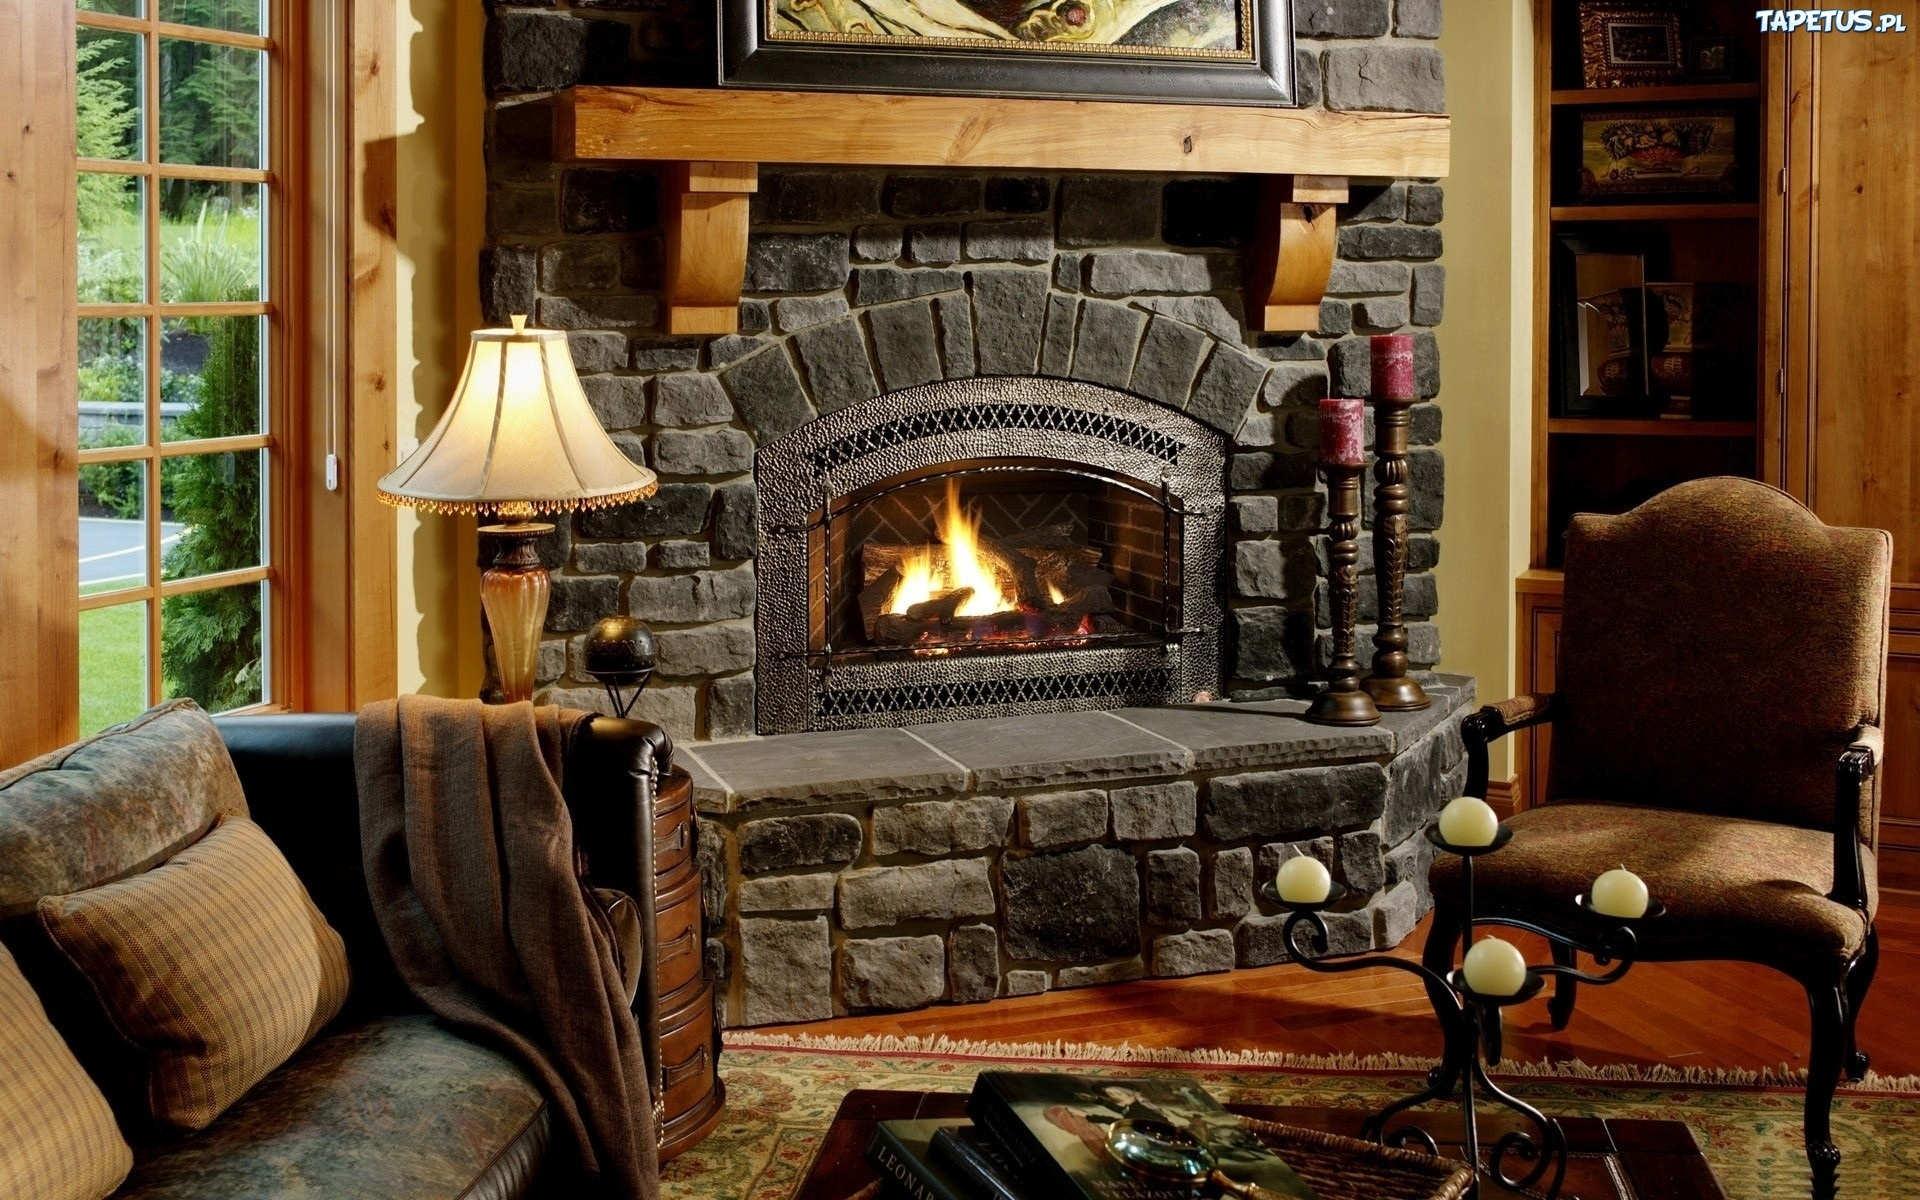 Wn trze pokoju go cinnego kominek meble - Beautiful stone fireplaces that rock ...